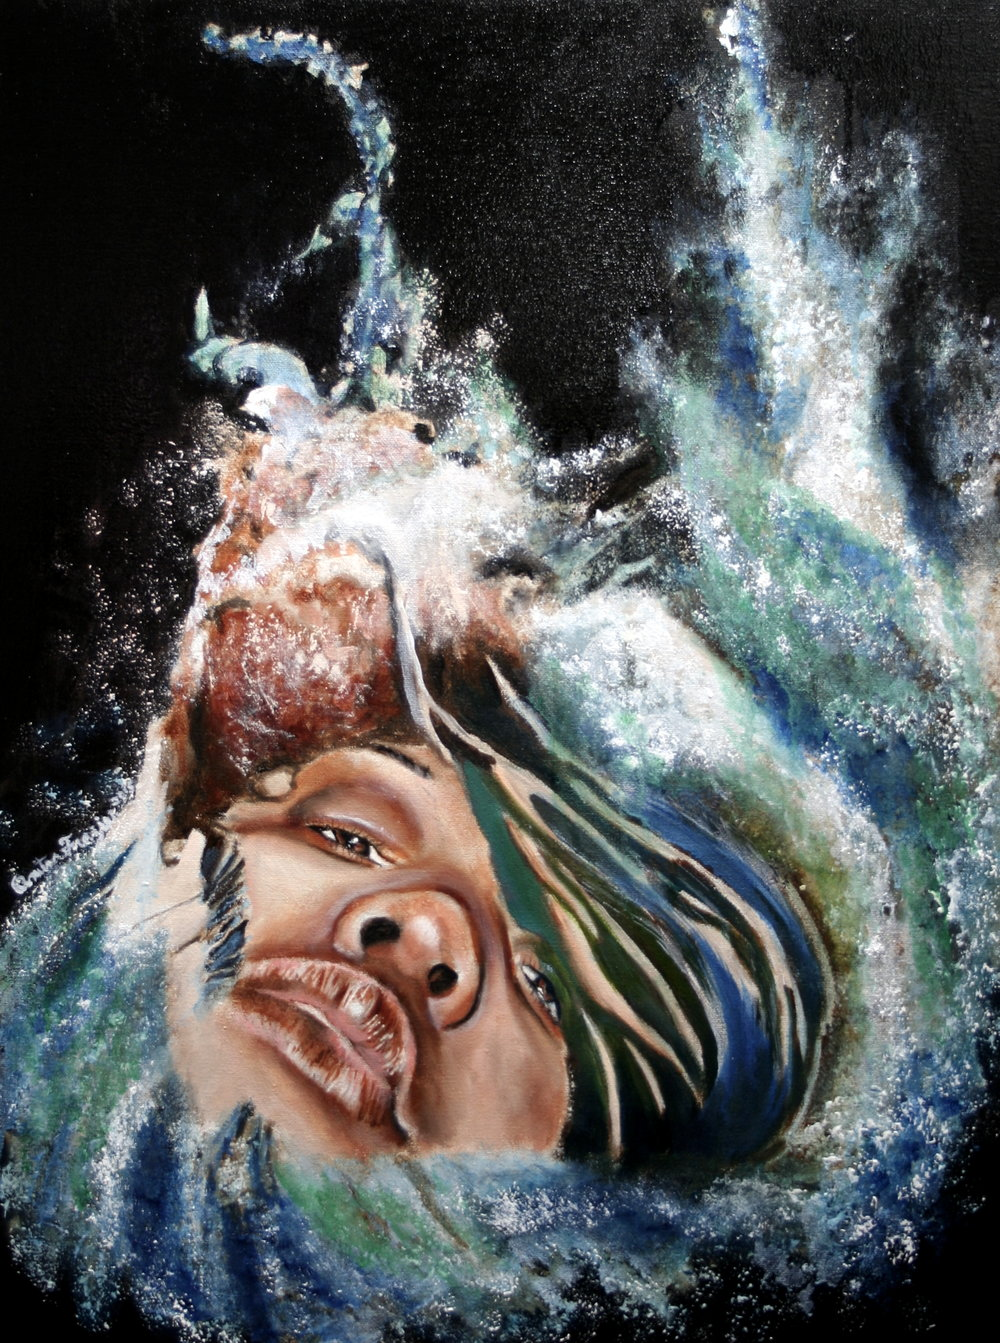 KEEPING MY HEAD ABOVE WATER